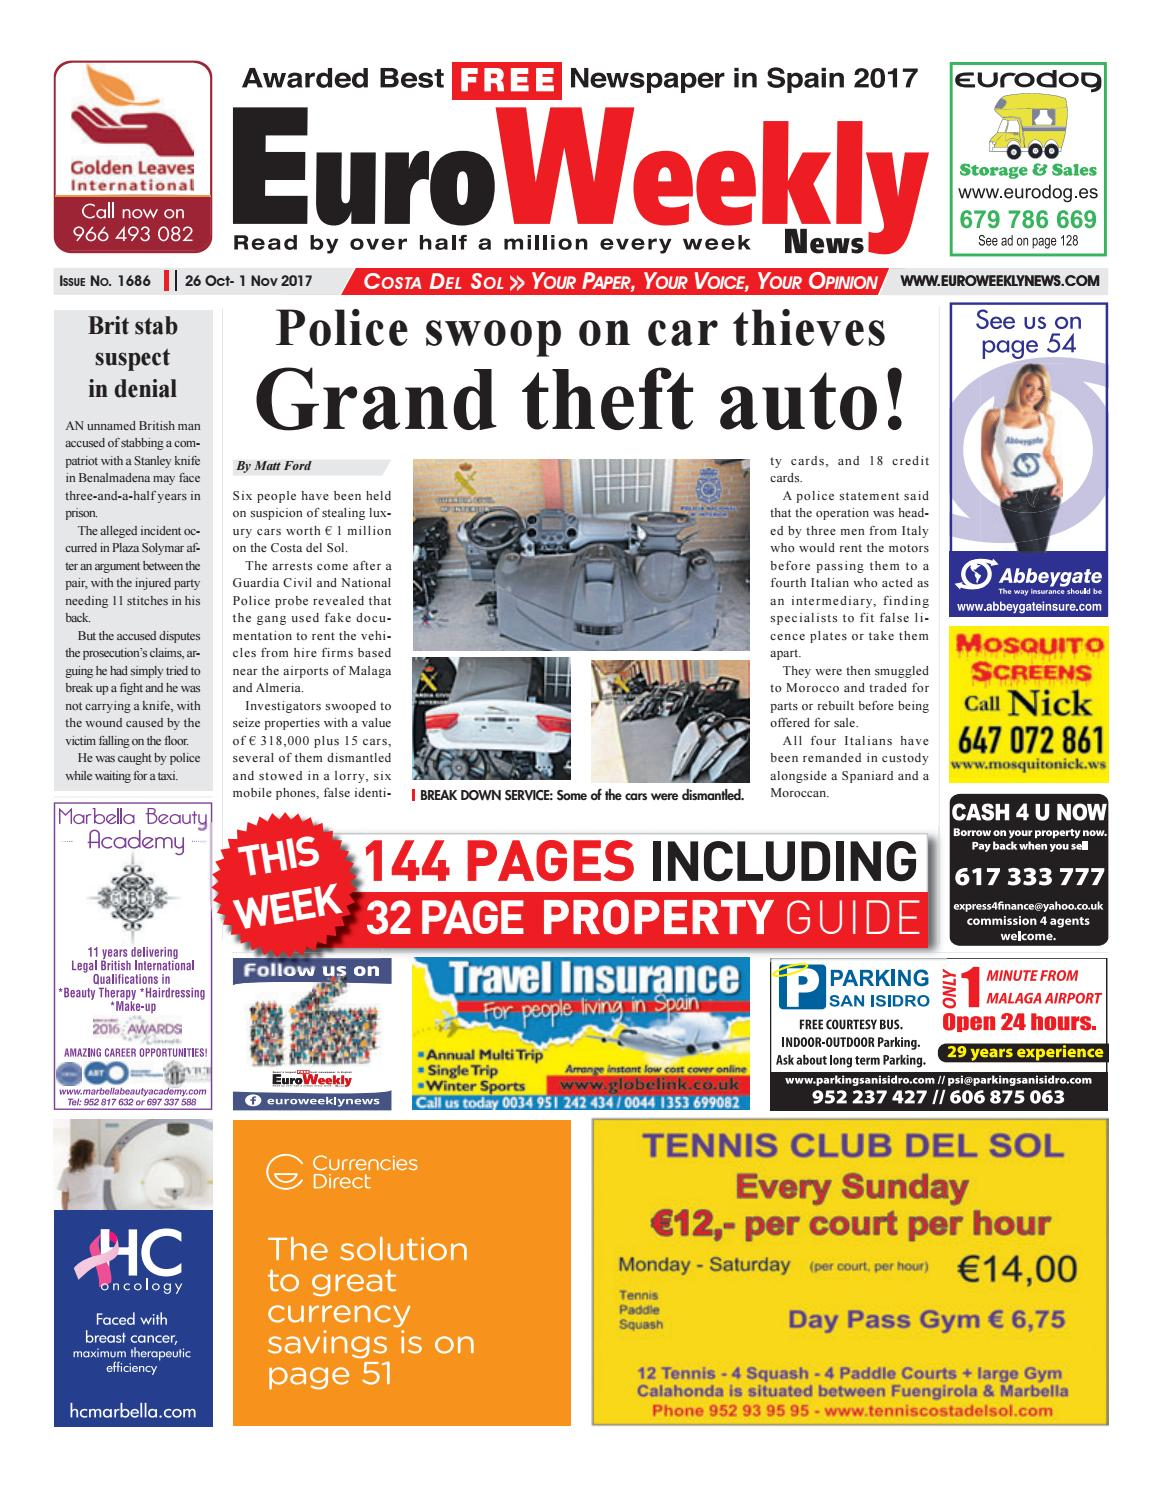 Euro Weekly News - Costa del Sol 26 October – 1 November 2017 Issue 1686 by  Euro Weekly News Media S.A. - issuu 05ac2a17ab5d8